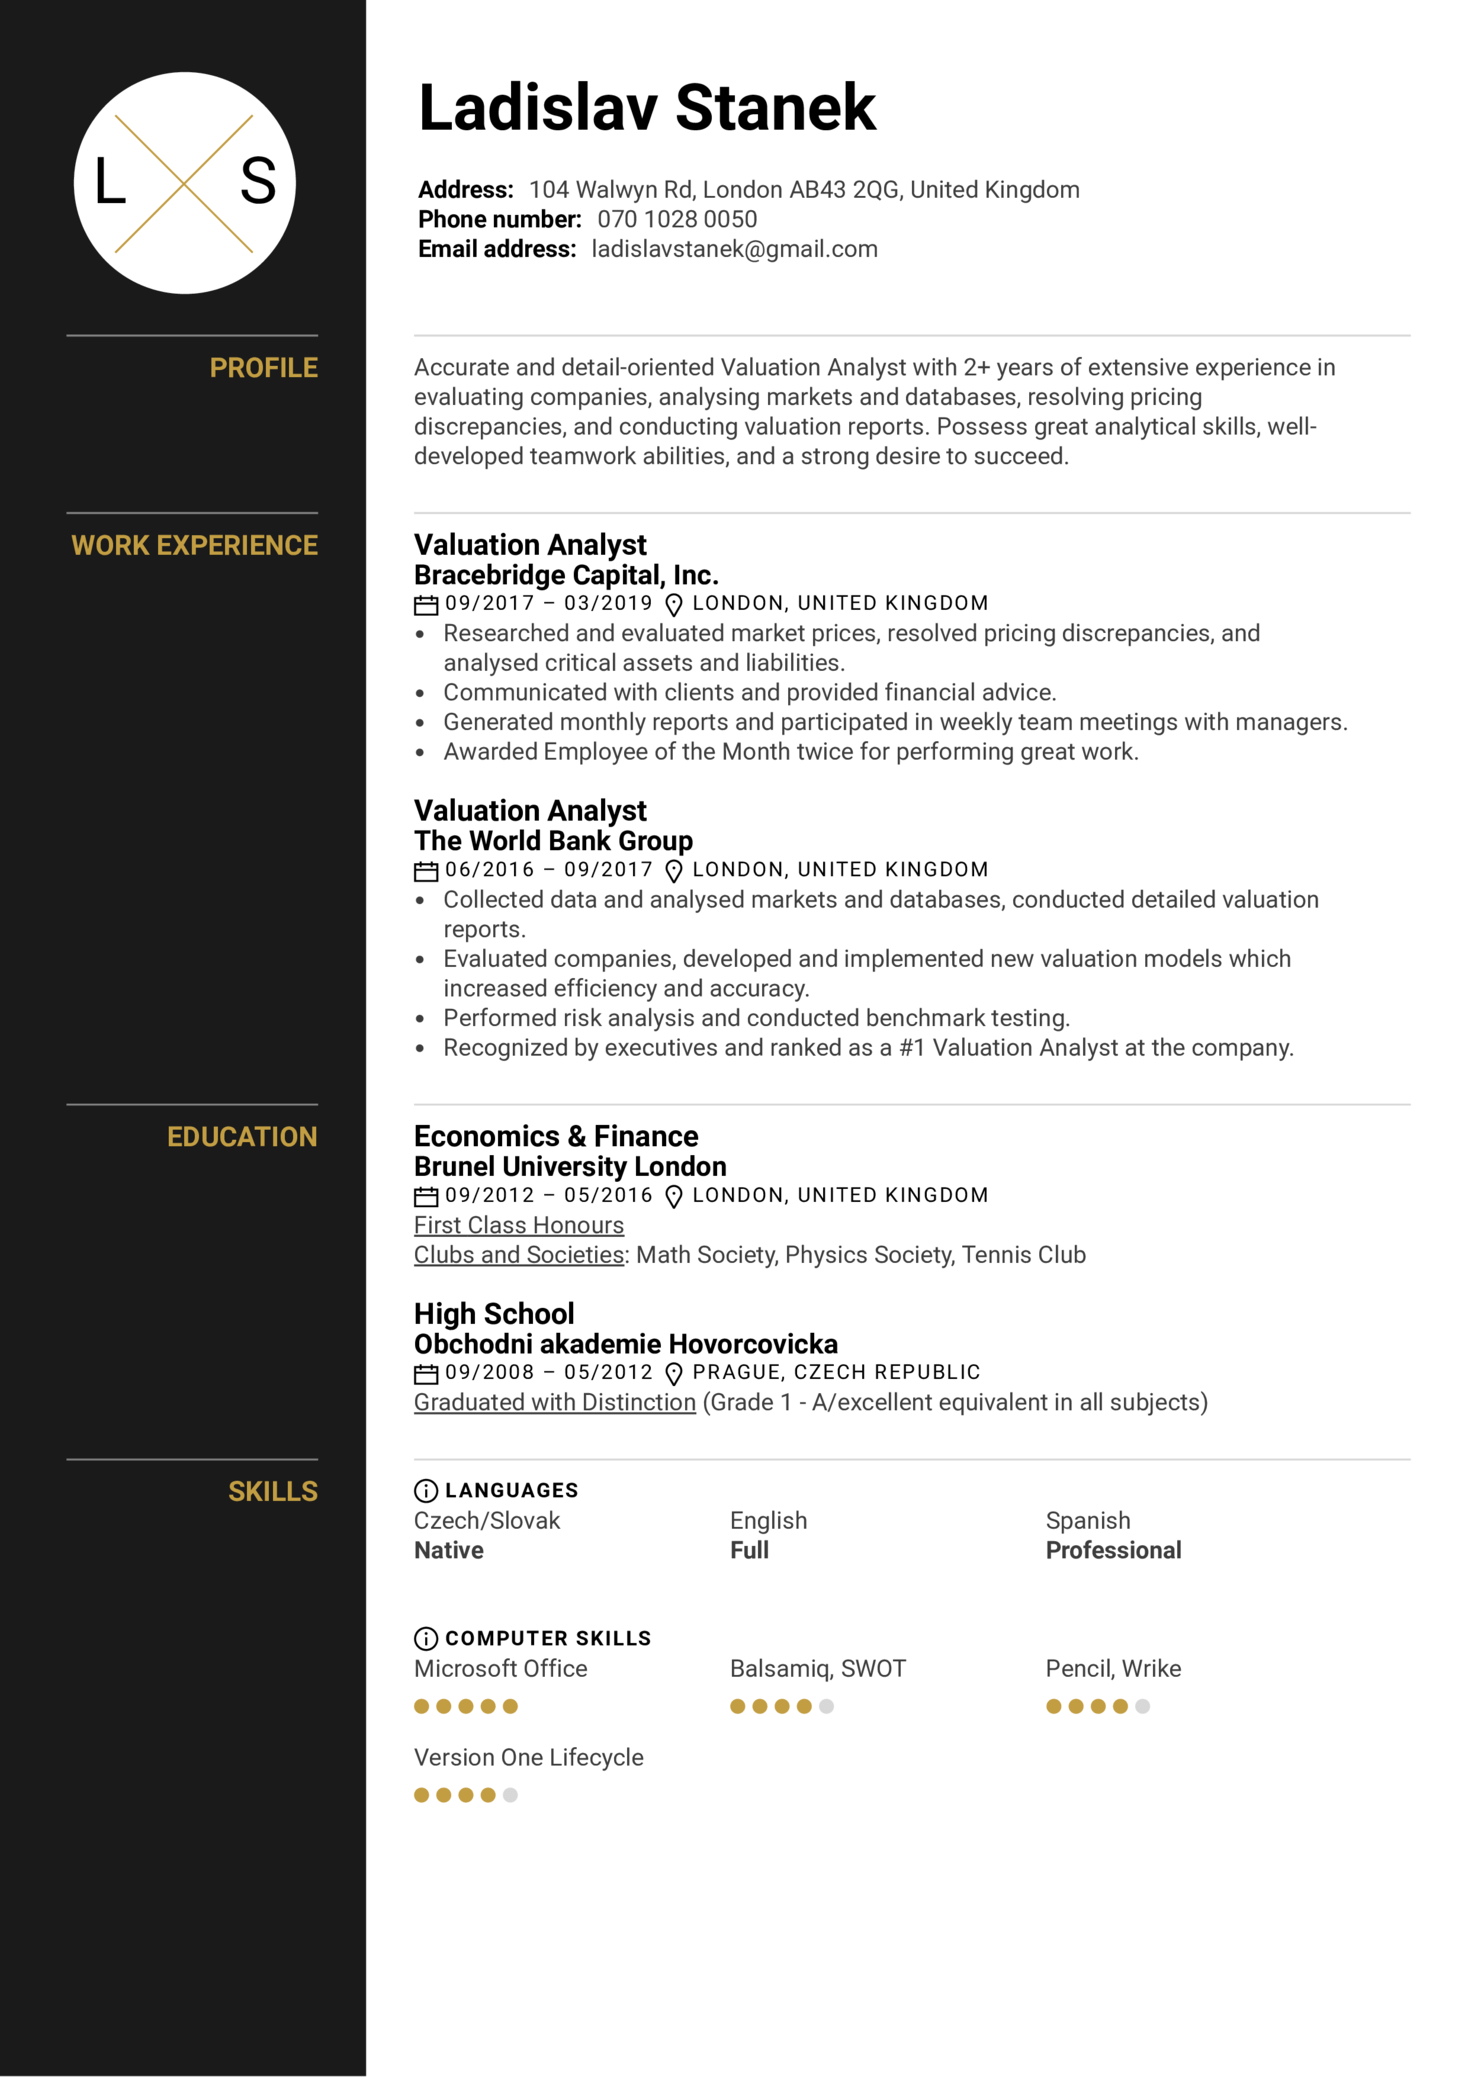 Valuation Analyst Resume Example (Part 1)